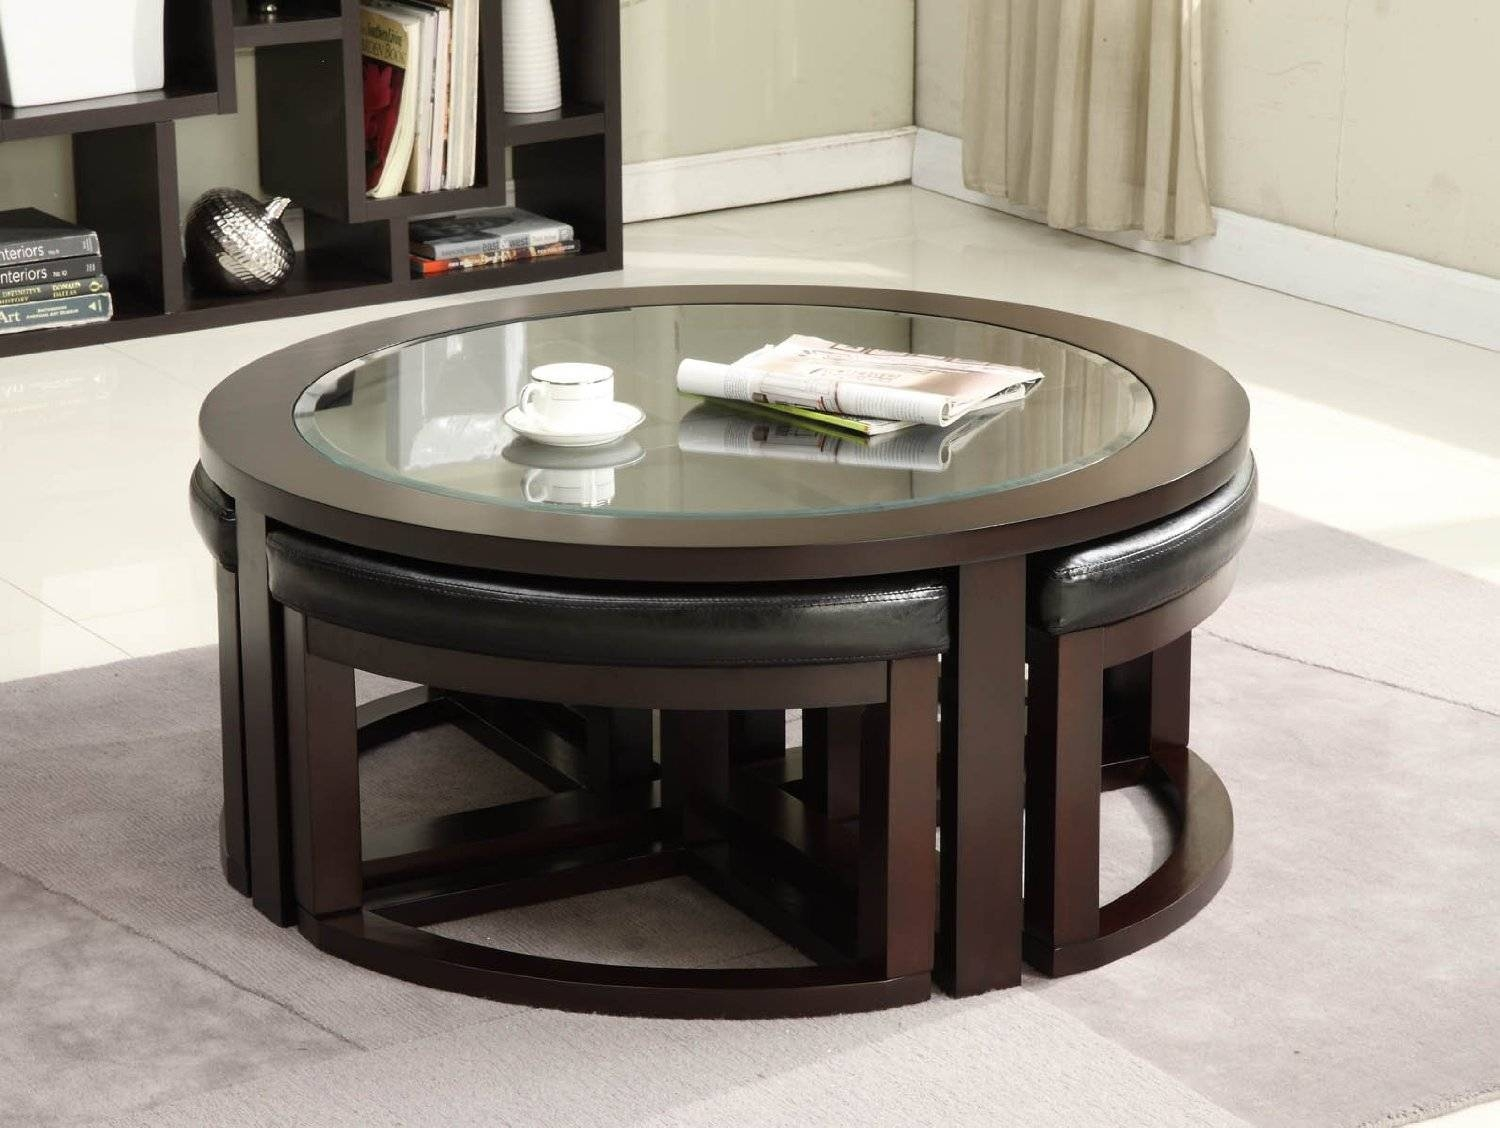 Glass Coffee Tables: Astounding Unique Samples Glass Coffee Tables For Round Wood And Glass Coffee Tables (View 14 of 15)